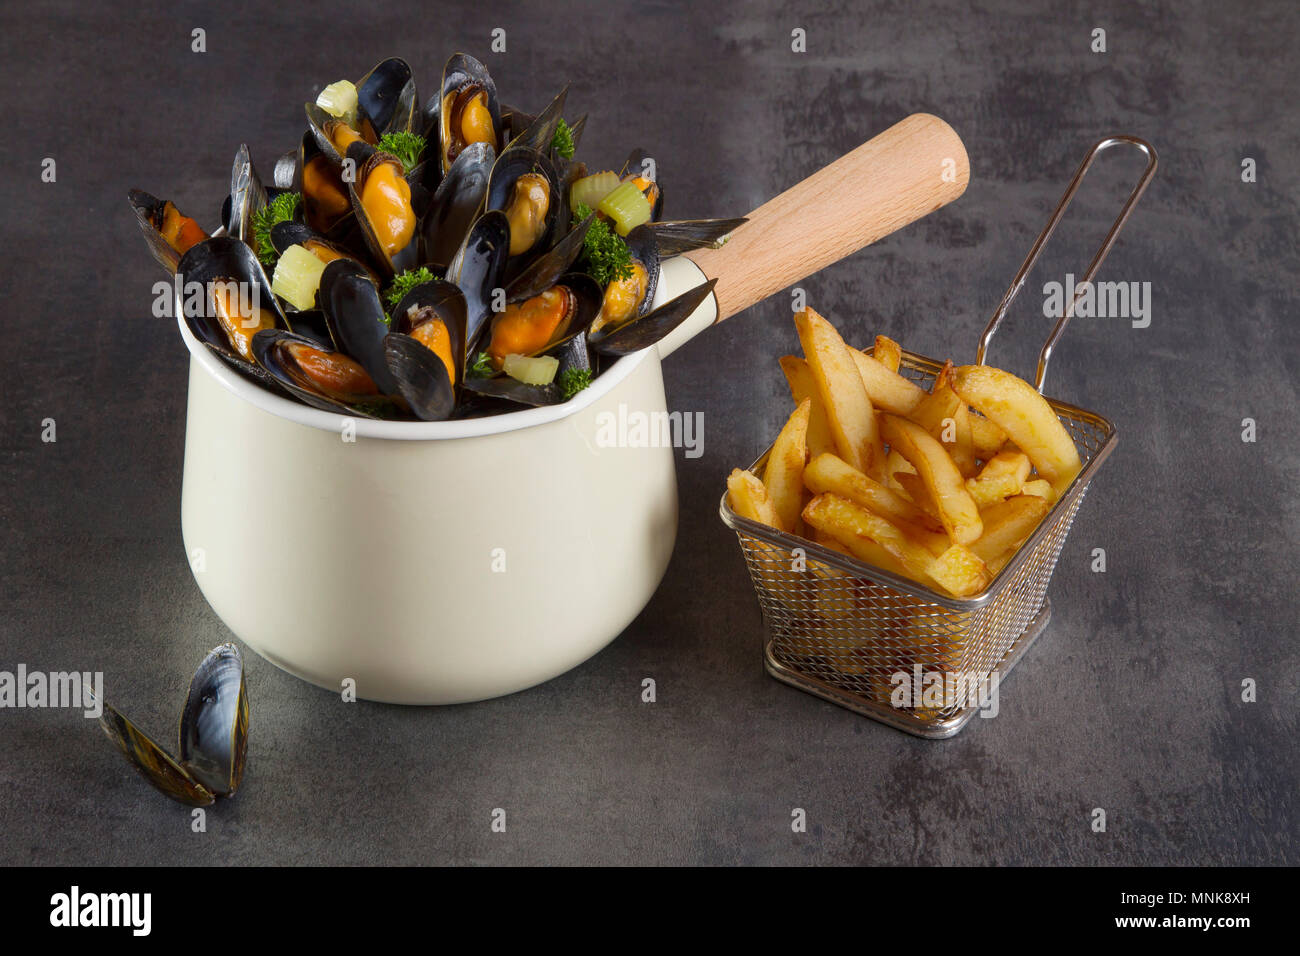 Mussels and French fries - Stock Image